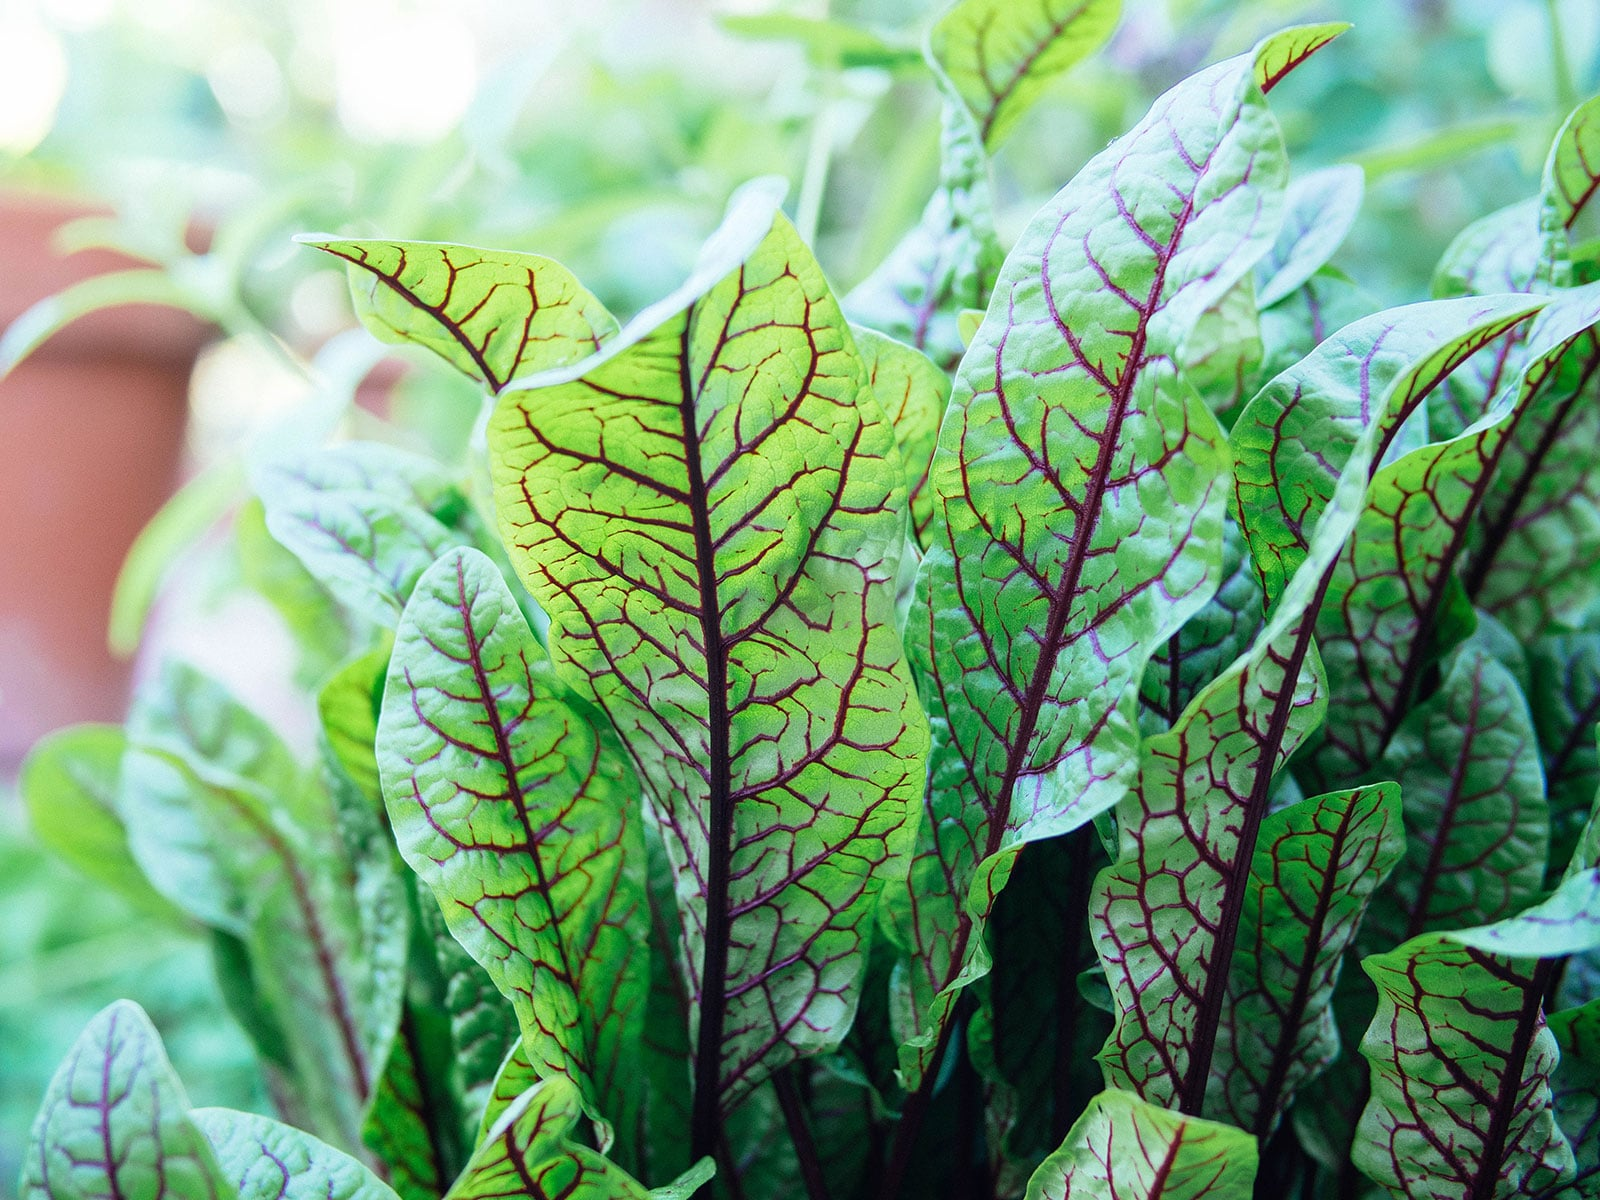 Close-up of red-veined sorrel (bloody dock) leaves